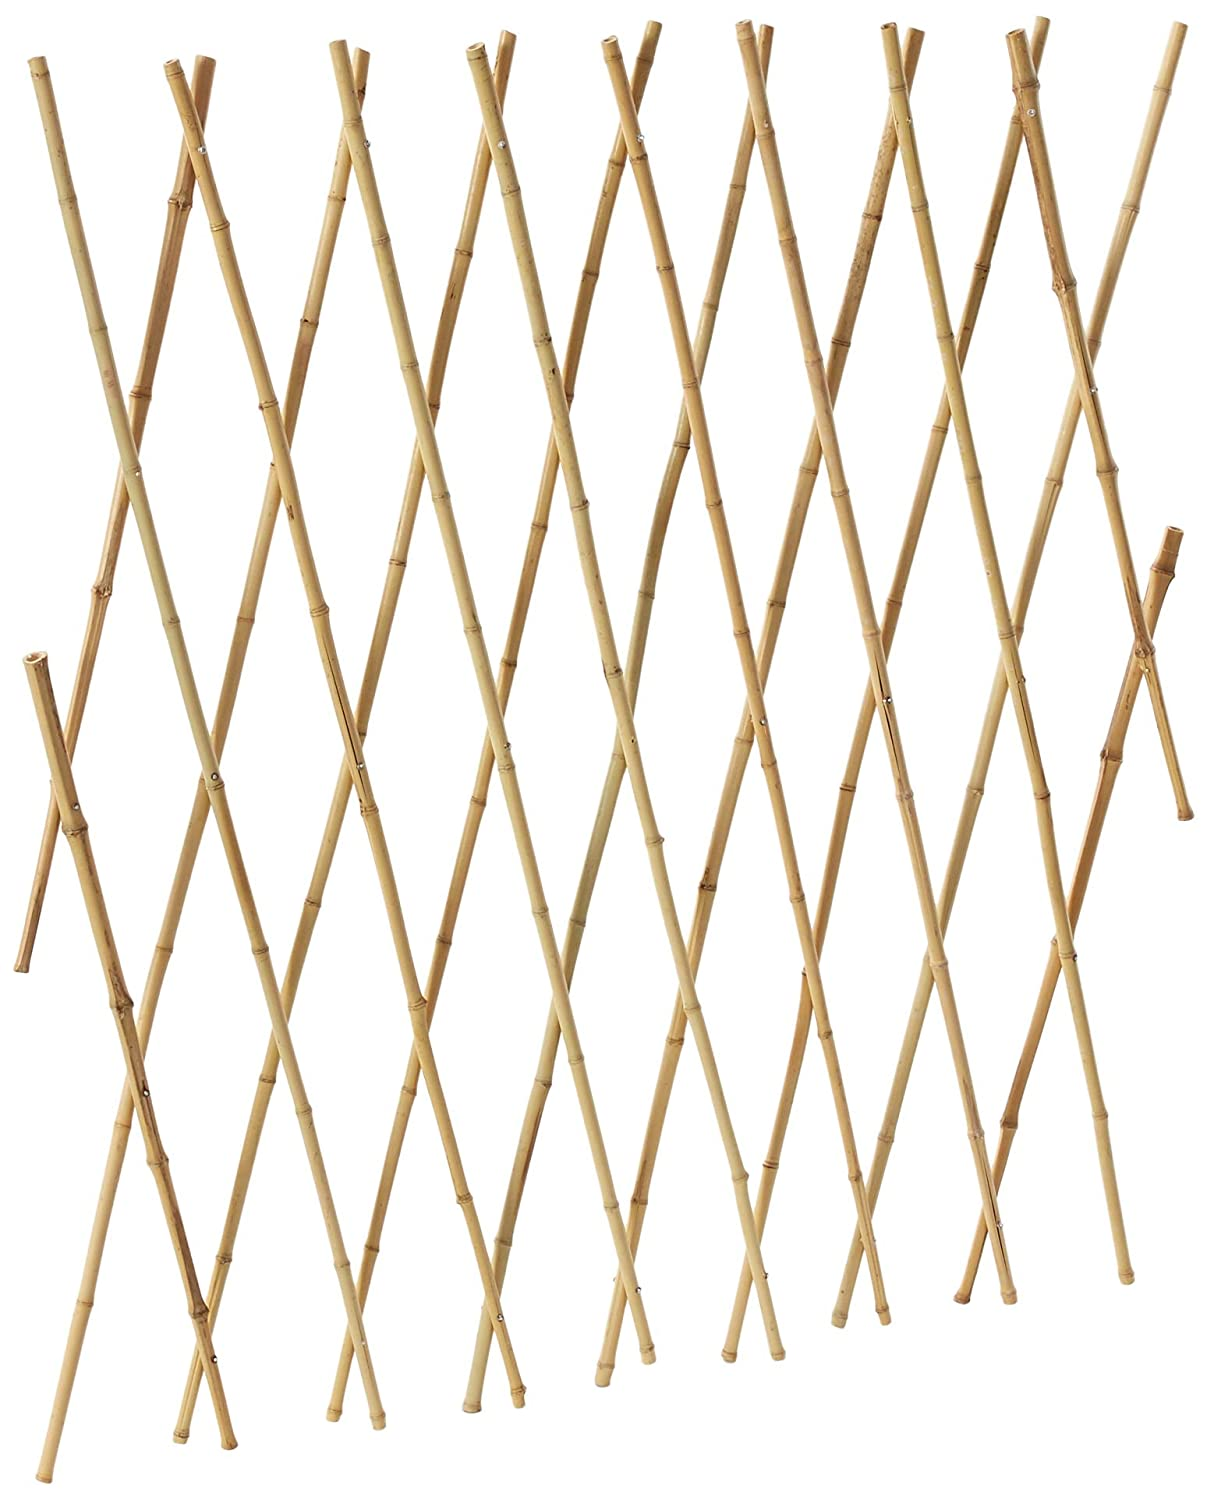 Bosmere Expanding Bamboo Trellis for Vining Plants, 6 x 4